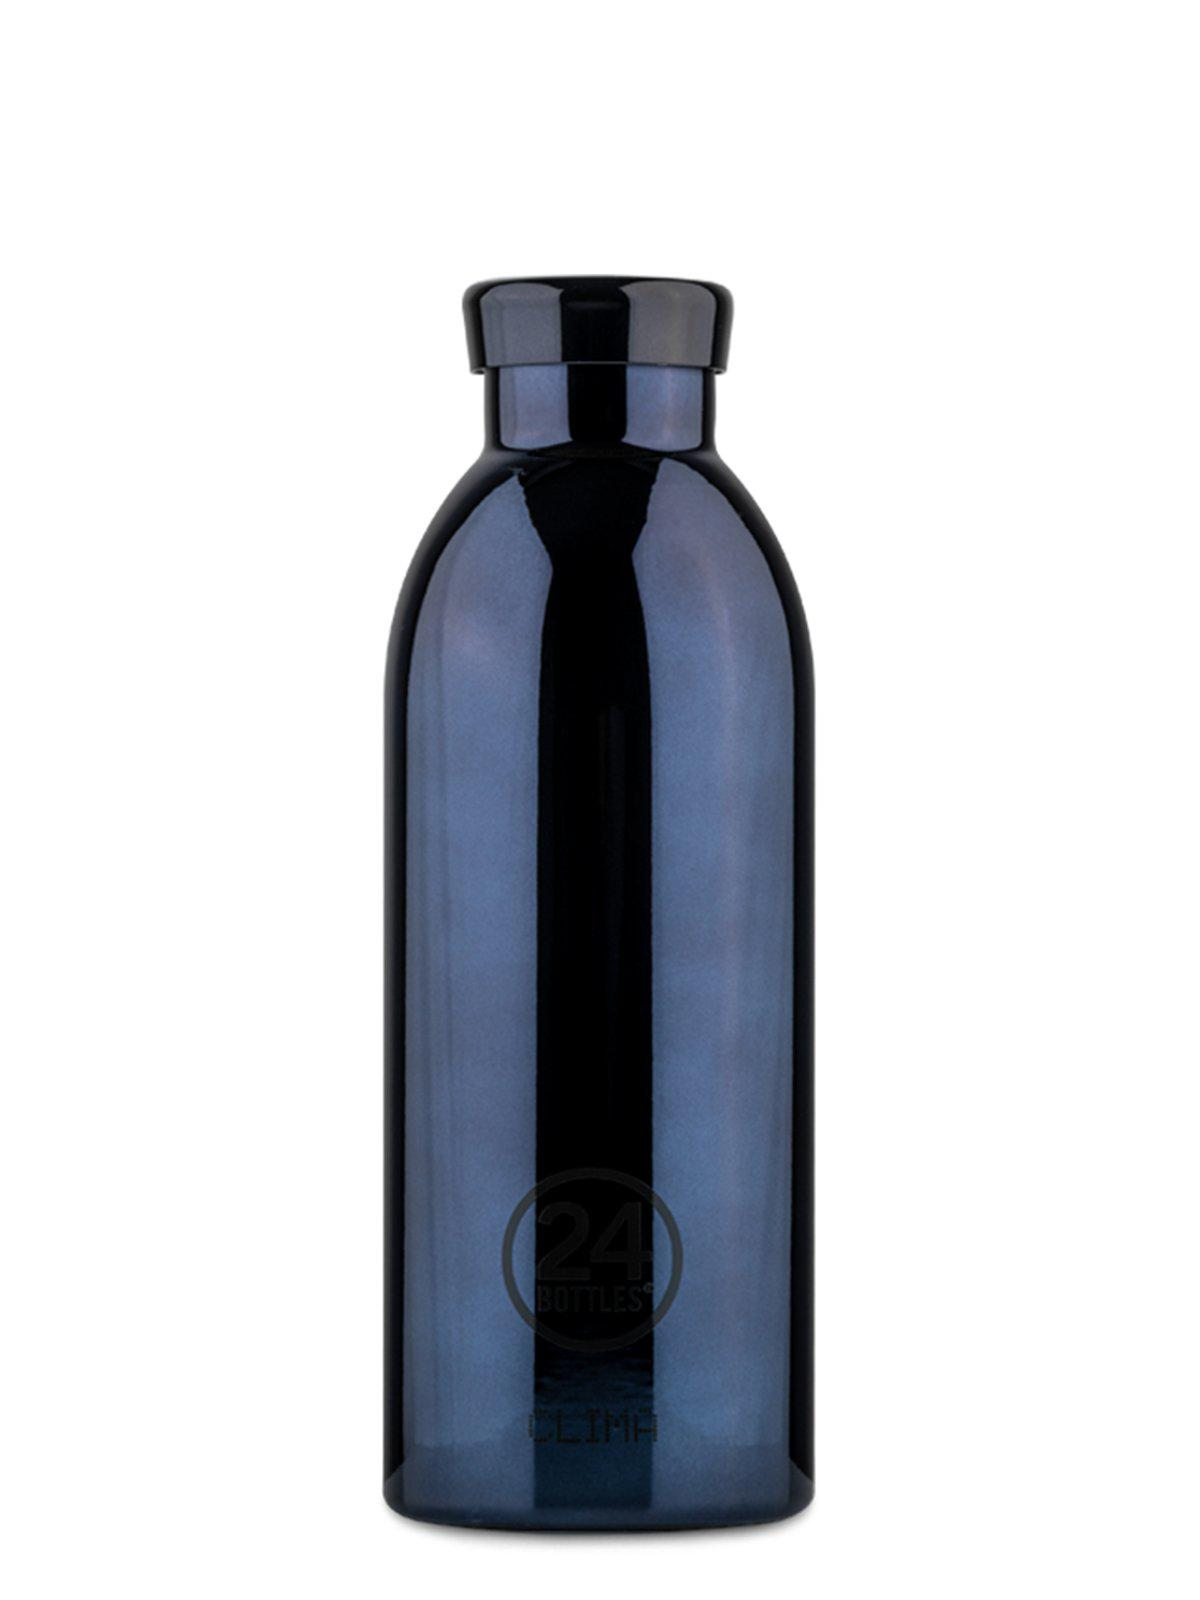 24Bottles Clima Bottle Black Radiance Chrome 500ml - MORE by Morello Indonesia